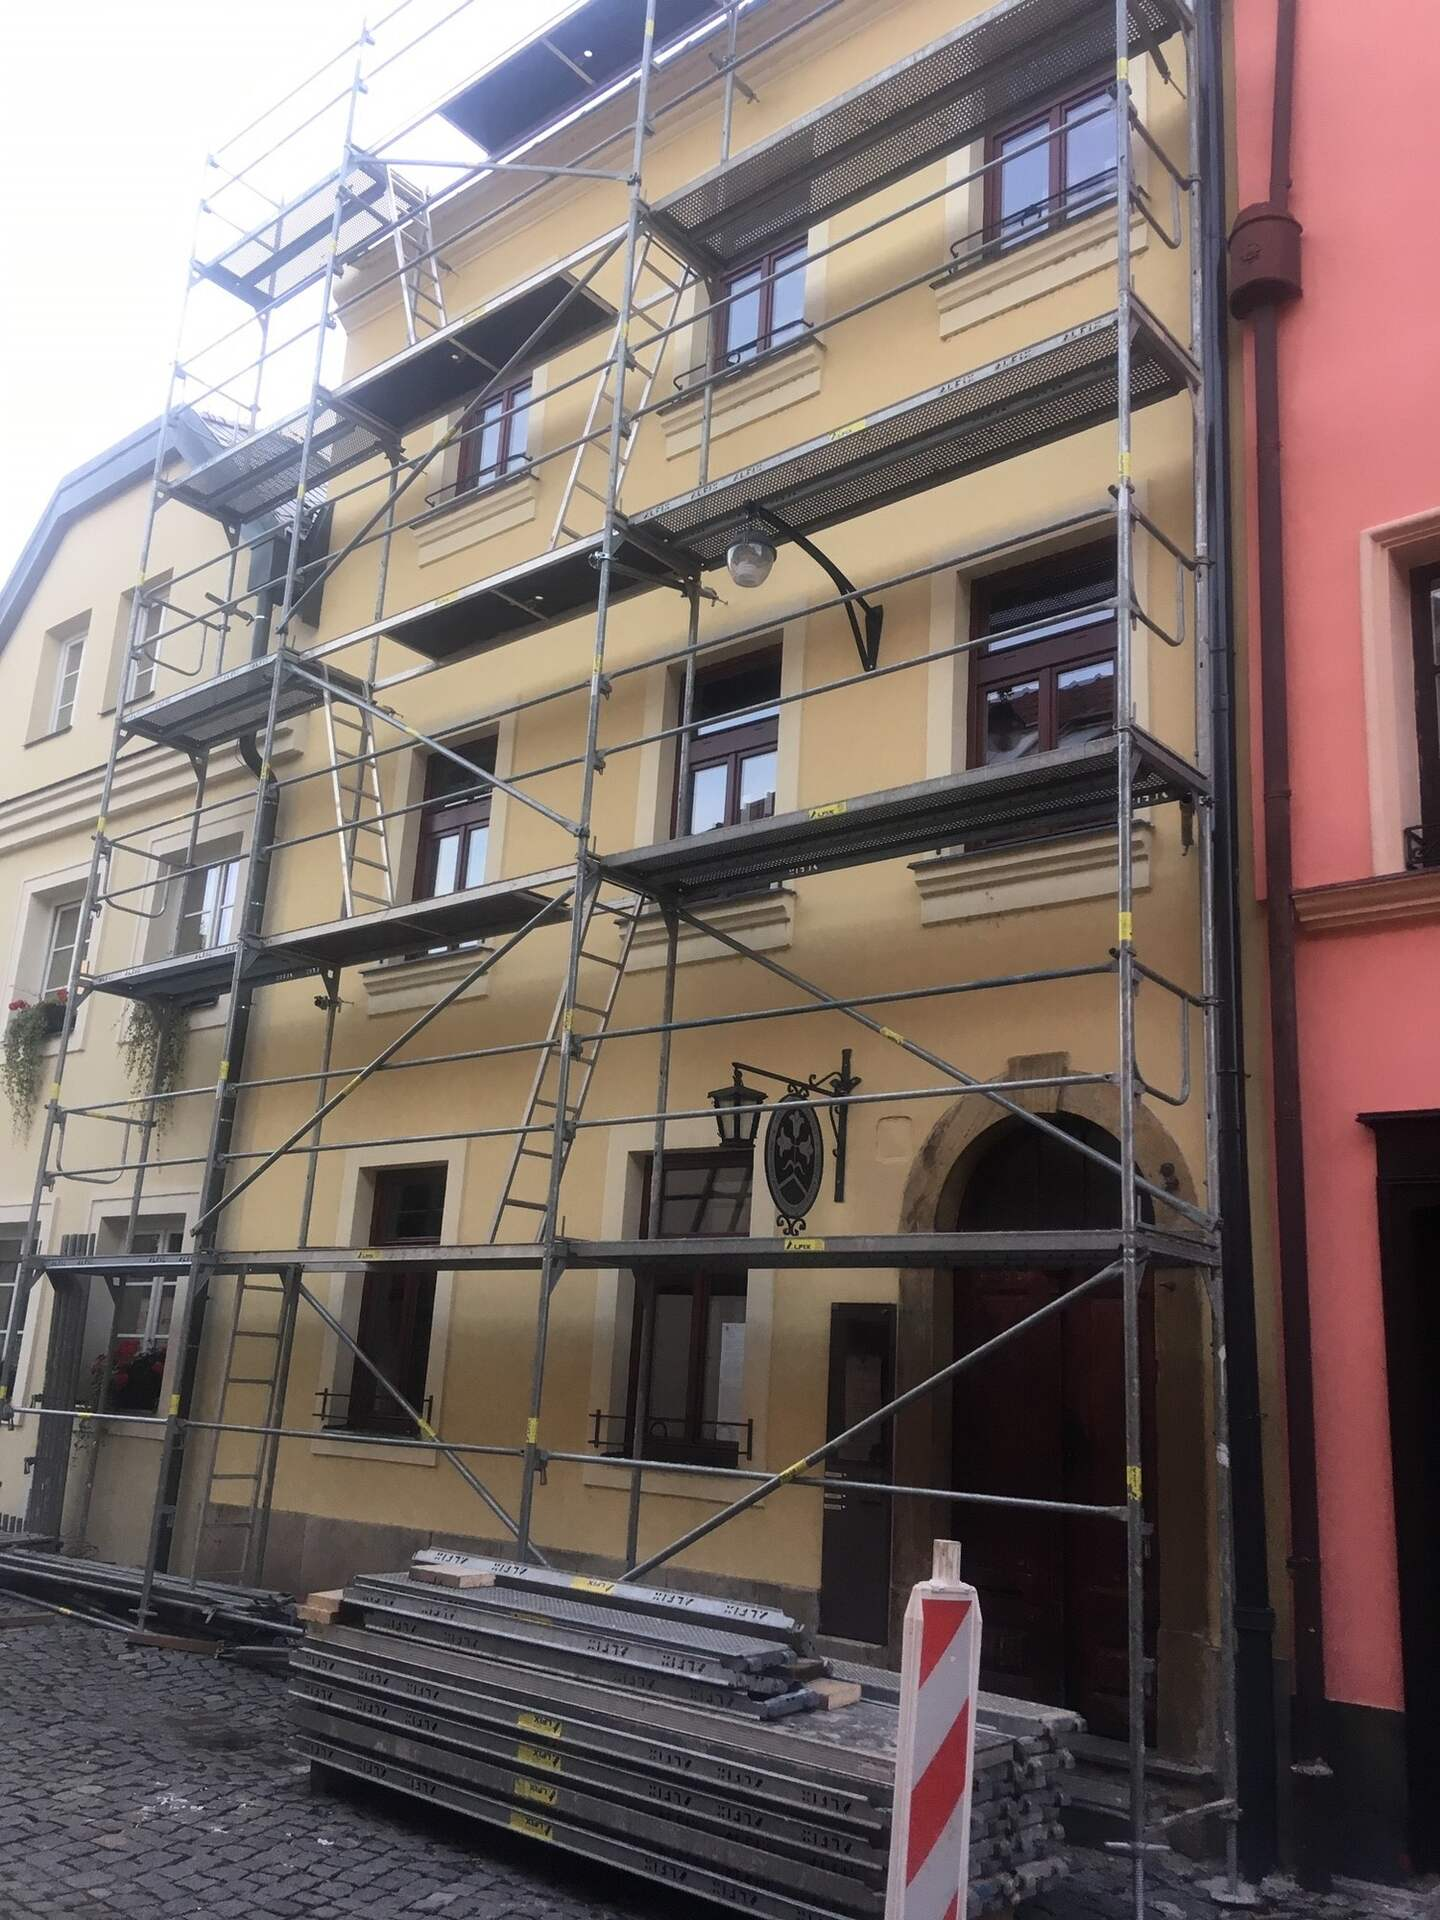 Reconstruction of the house in the Historical zone in Olomouc